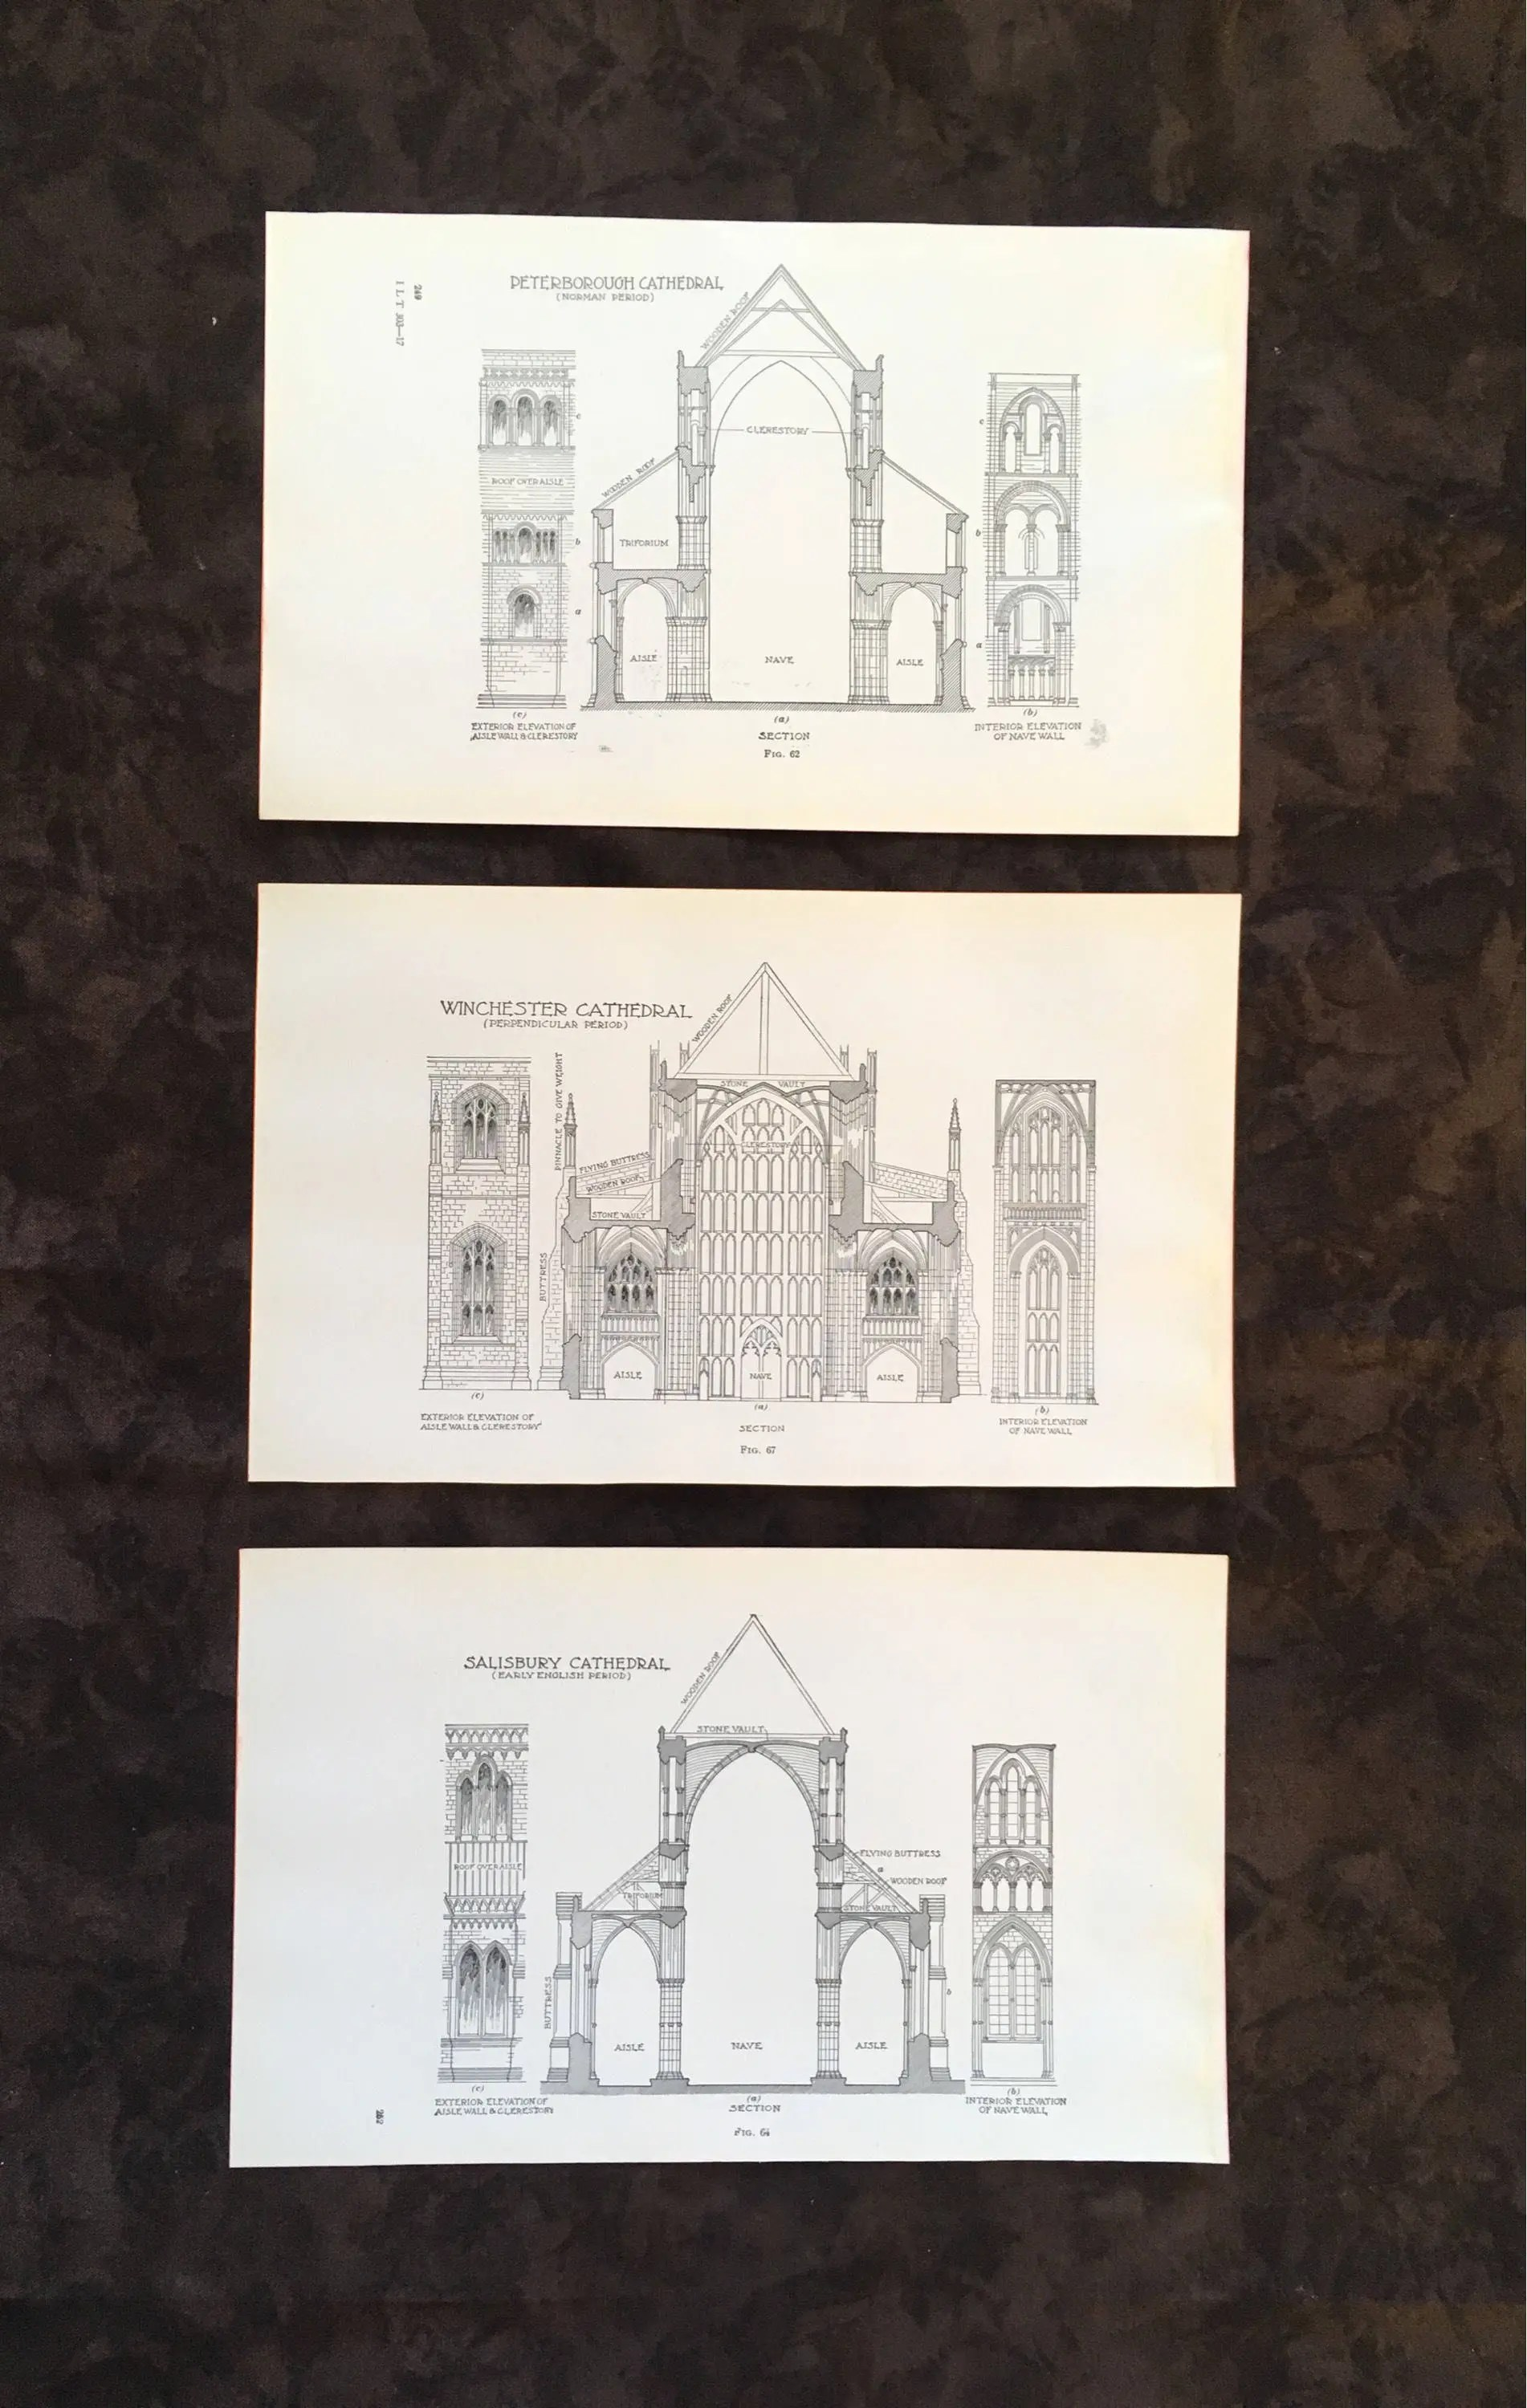 Vintage Architectural Blueprints 1928 Architectural Illustration Vintage Book Page Blueprints Historic Structure Building Black And White Design Cathedral Print Wall Art